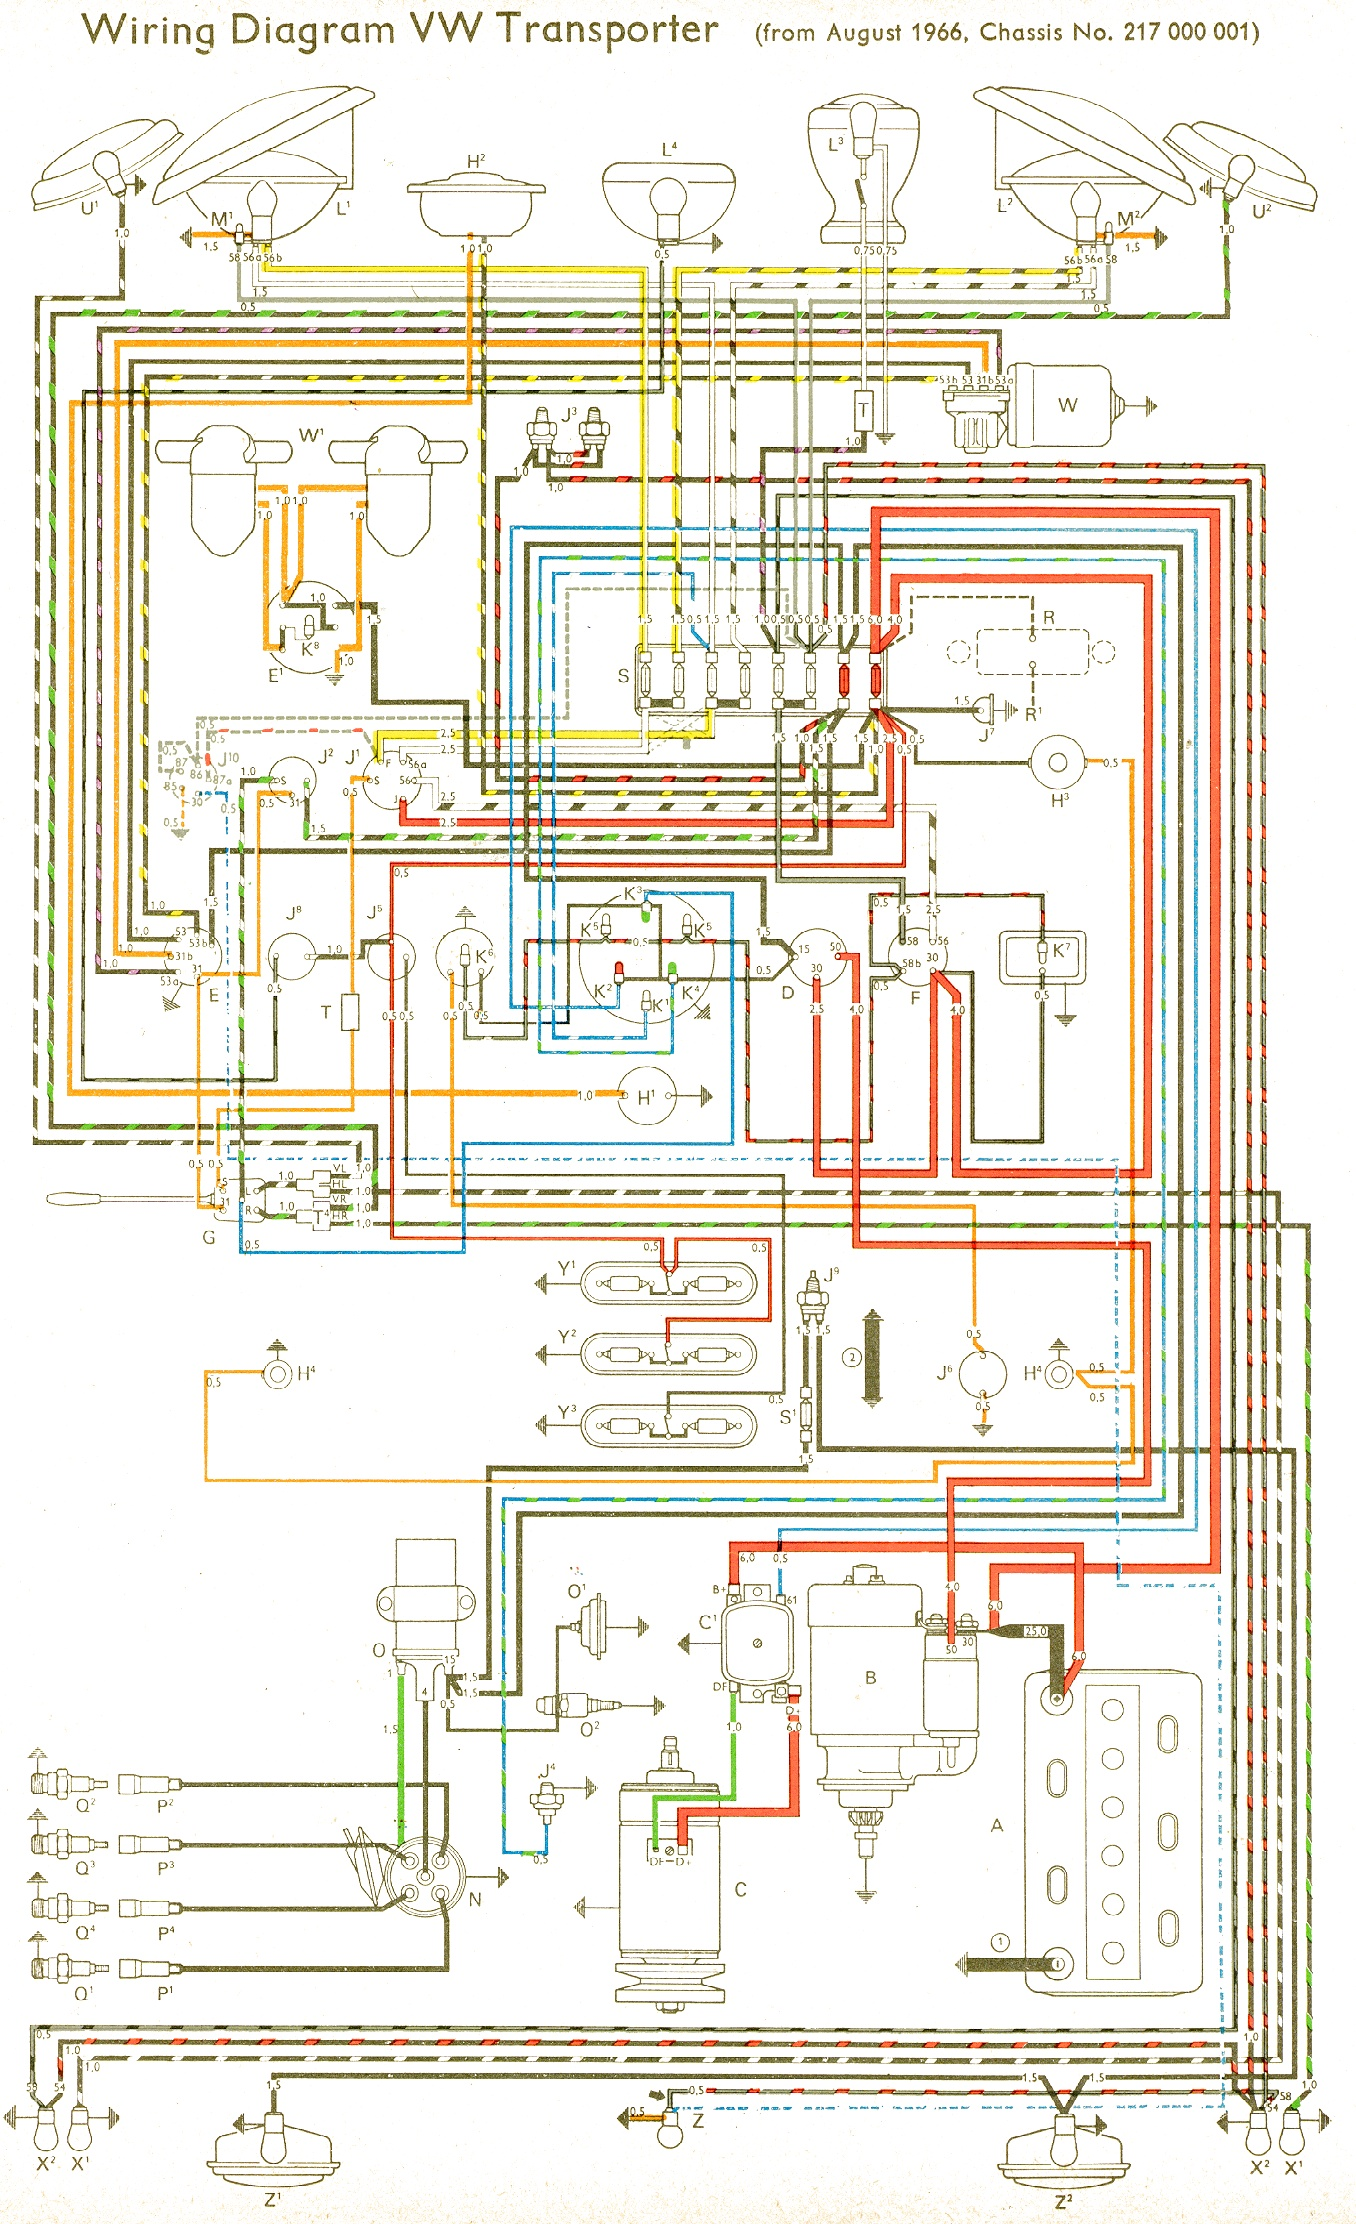 bus 66 bus wiring diagram vw wiring harness diagram \u2022 wiring diagrams j 1971 vw bus wiring diagram at cos-gaming.co